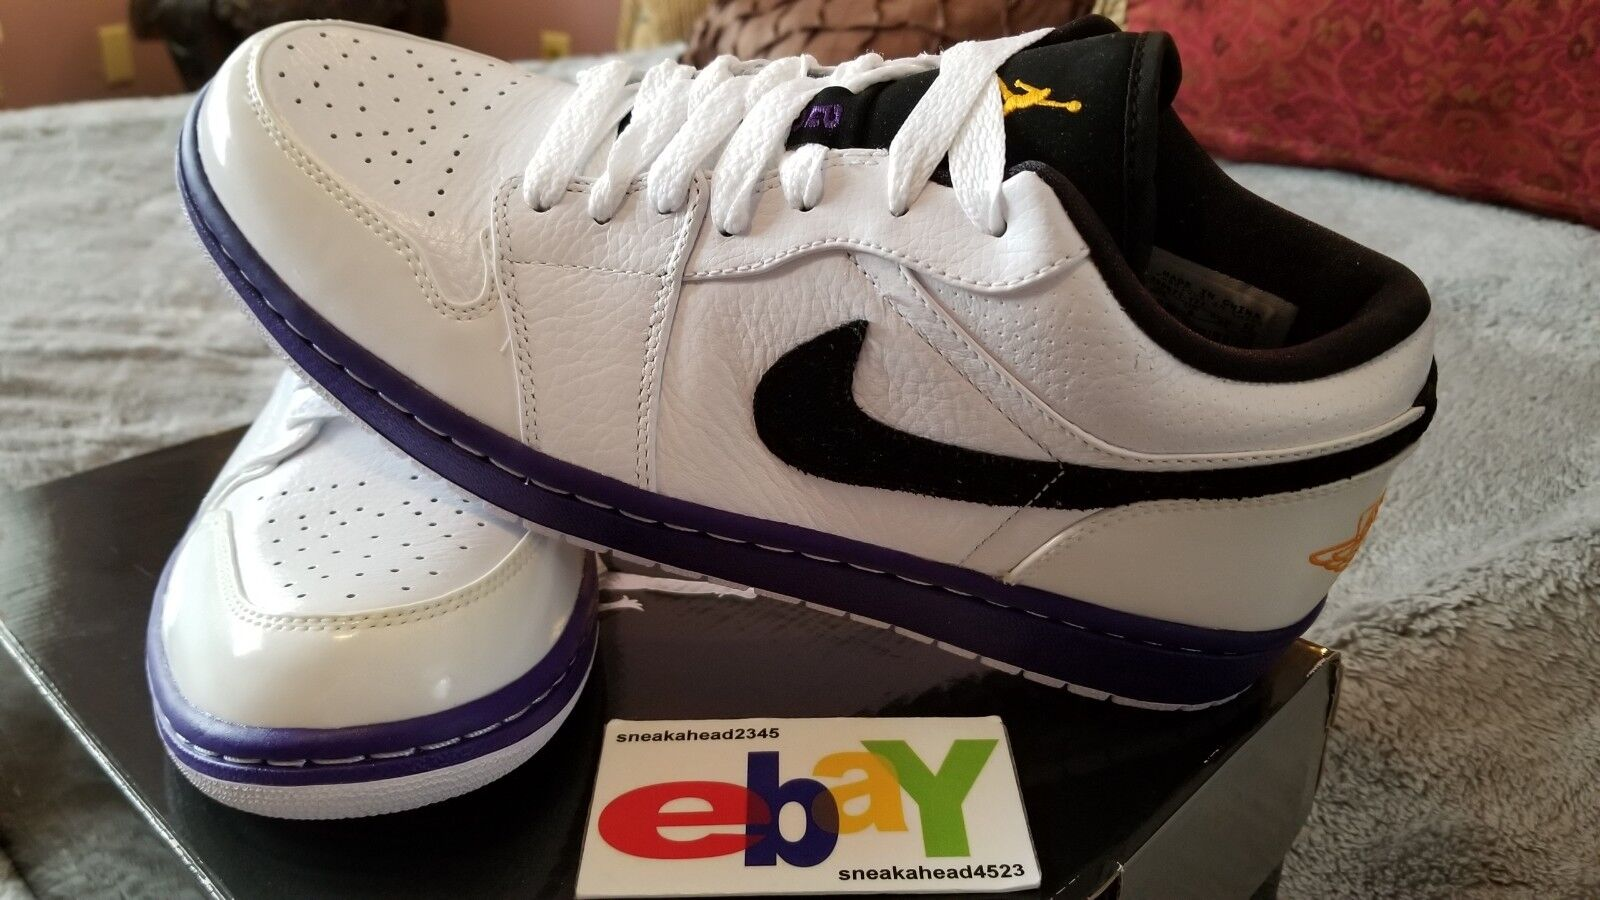 AIR JORDAN 1 PHAT PHAT PHAT RETRO LOW LAKERS 09 10 08 WHT TAXI-COURT viola-BLK 350571 171 5b58f4